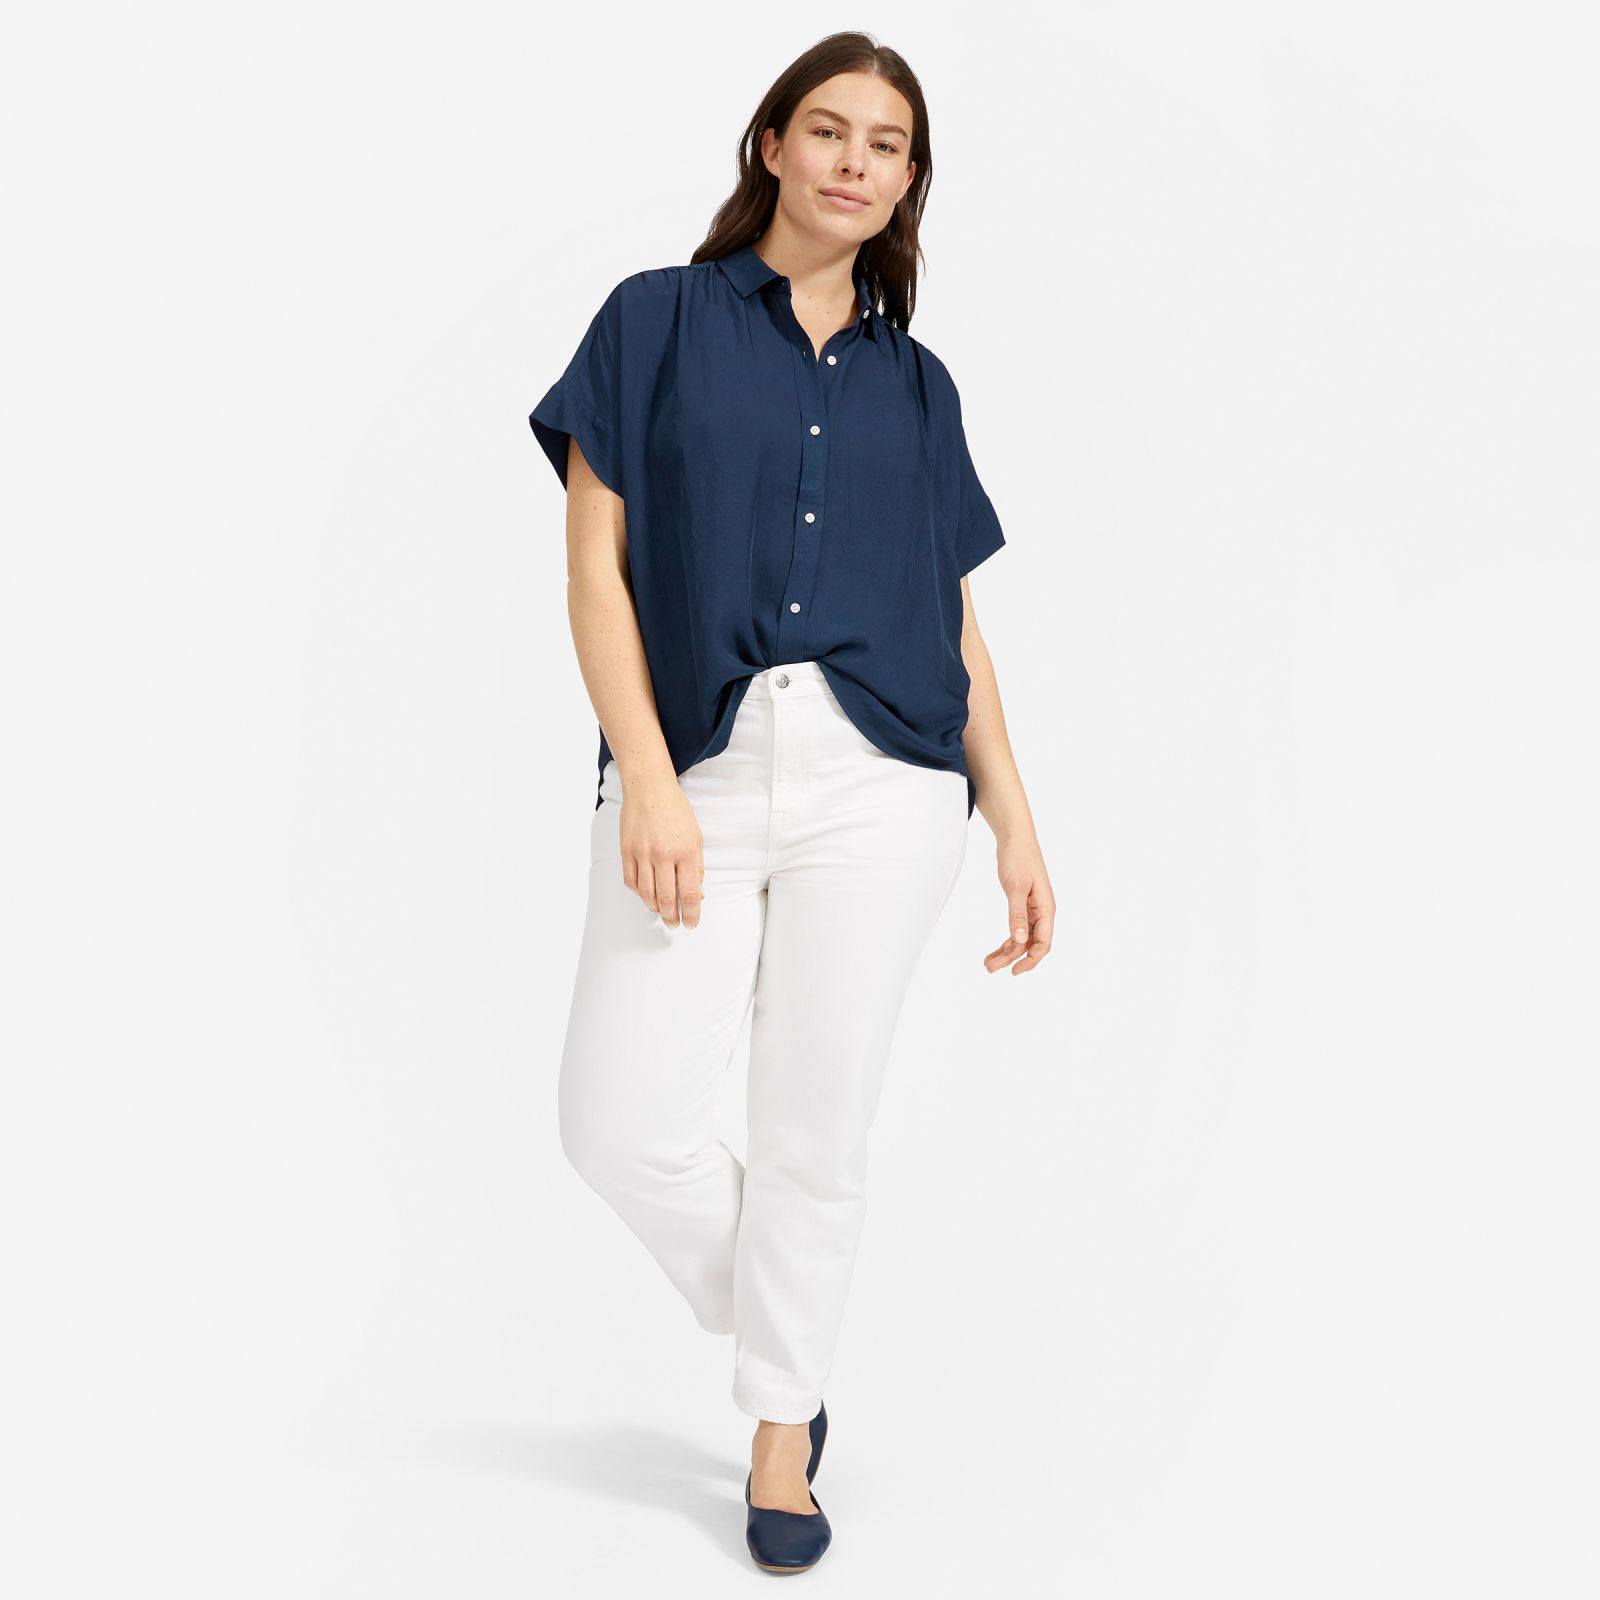 women's japanese goweave light square shirt by everlane in navy, size 16